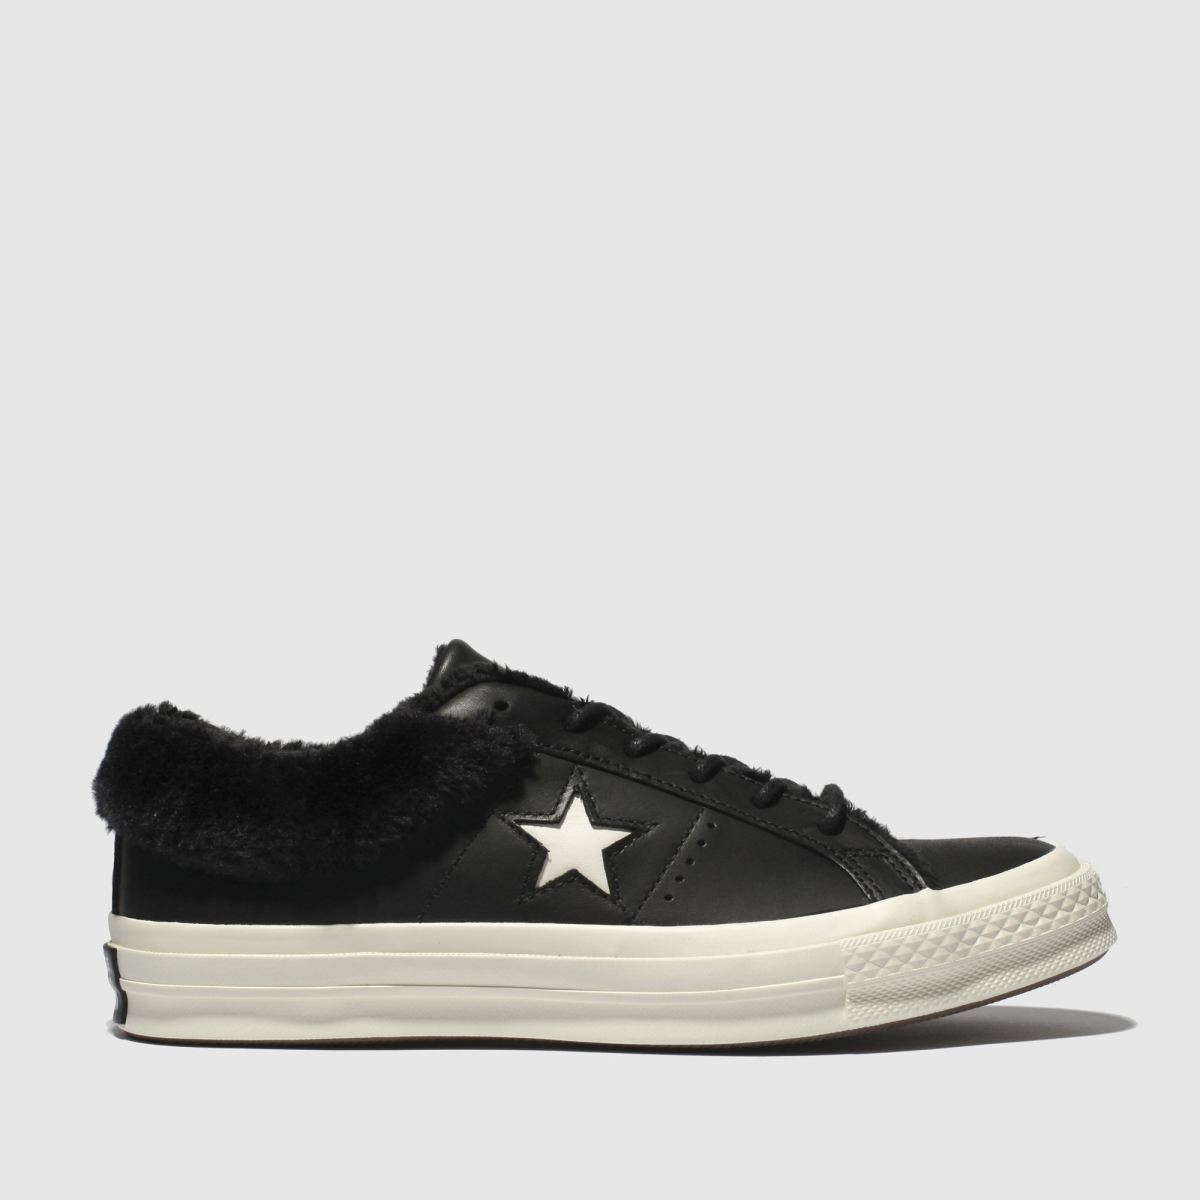 Converse Black & White One Star Shearling Trainers